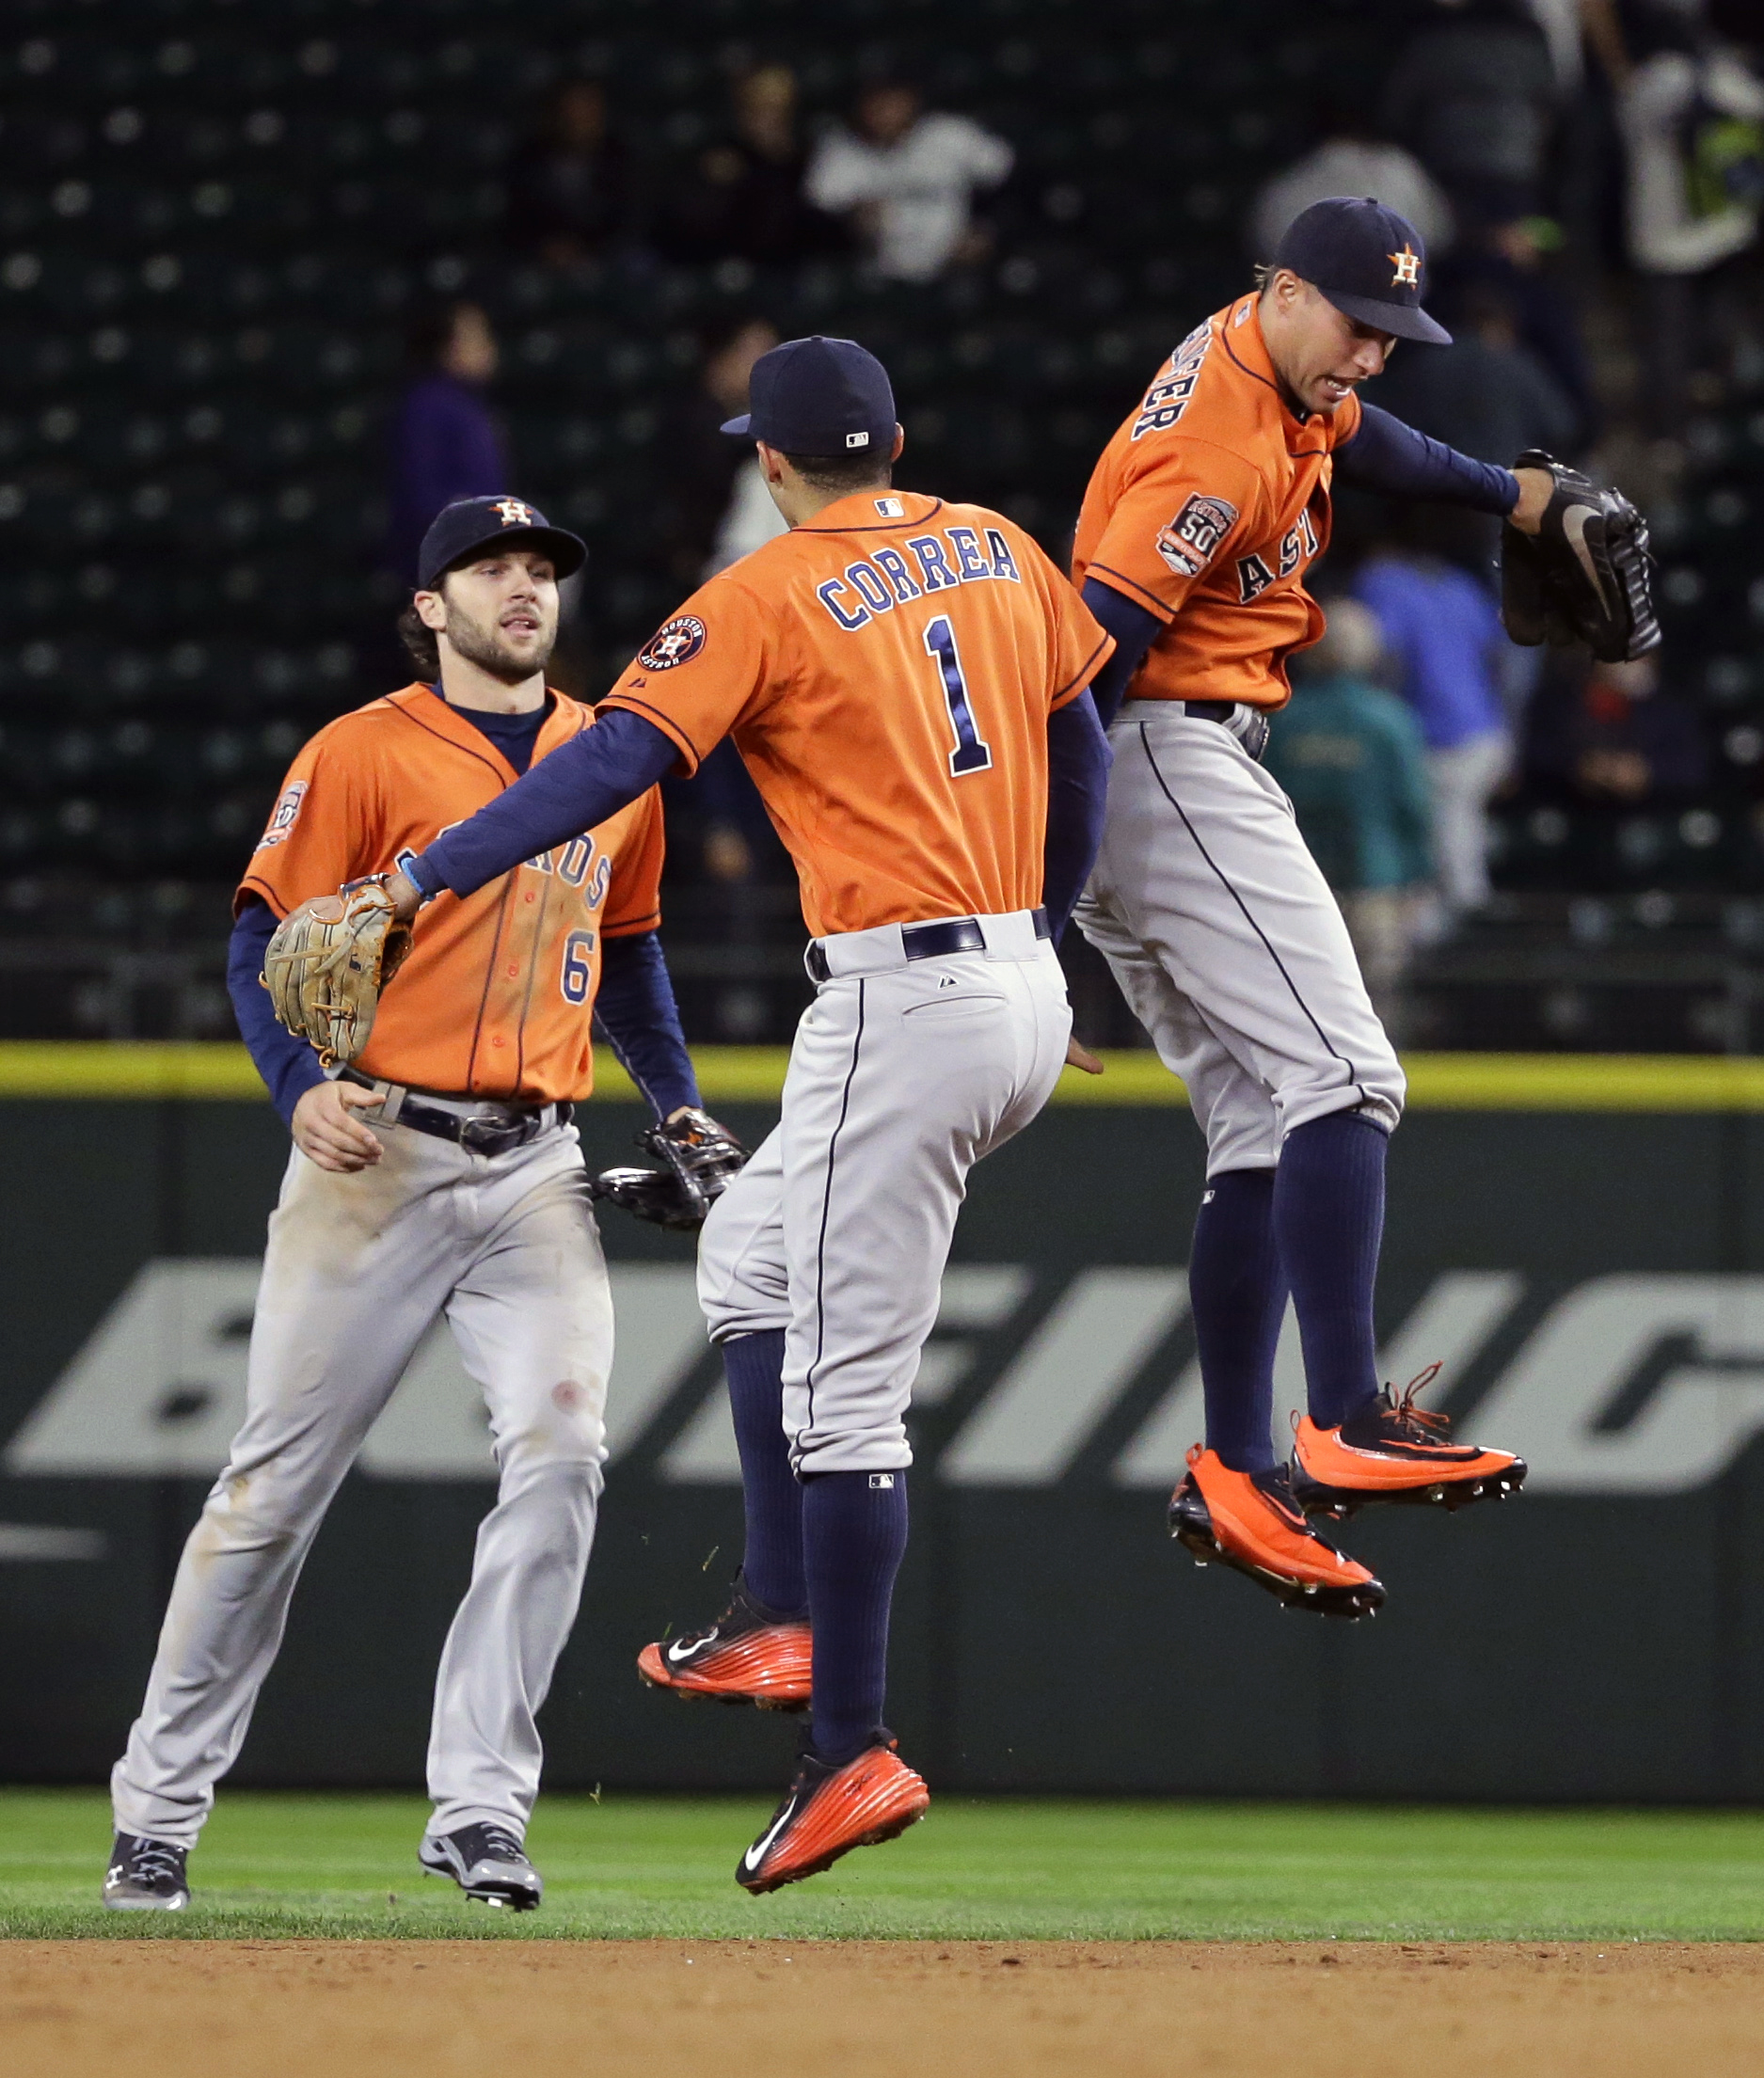 Houston Astros outfielder Jake Marisnick, left, shortstop Carlos Correa, center, and outfielder George Springer, right, celebrate after the Astros defeated the Seattle Mariners 3-2 in a baseball game, Monday, Sept. 28, 2015, in Seattle. (AP Photo/Ted S. W